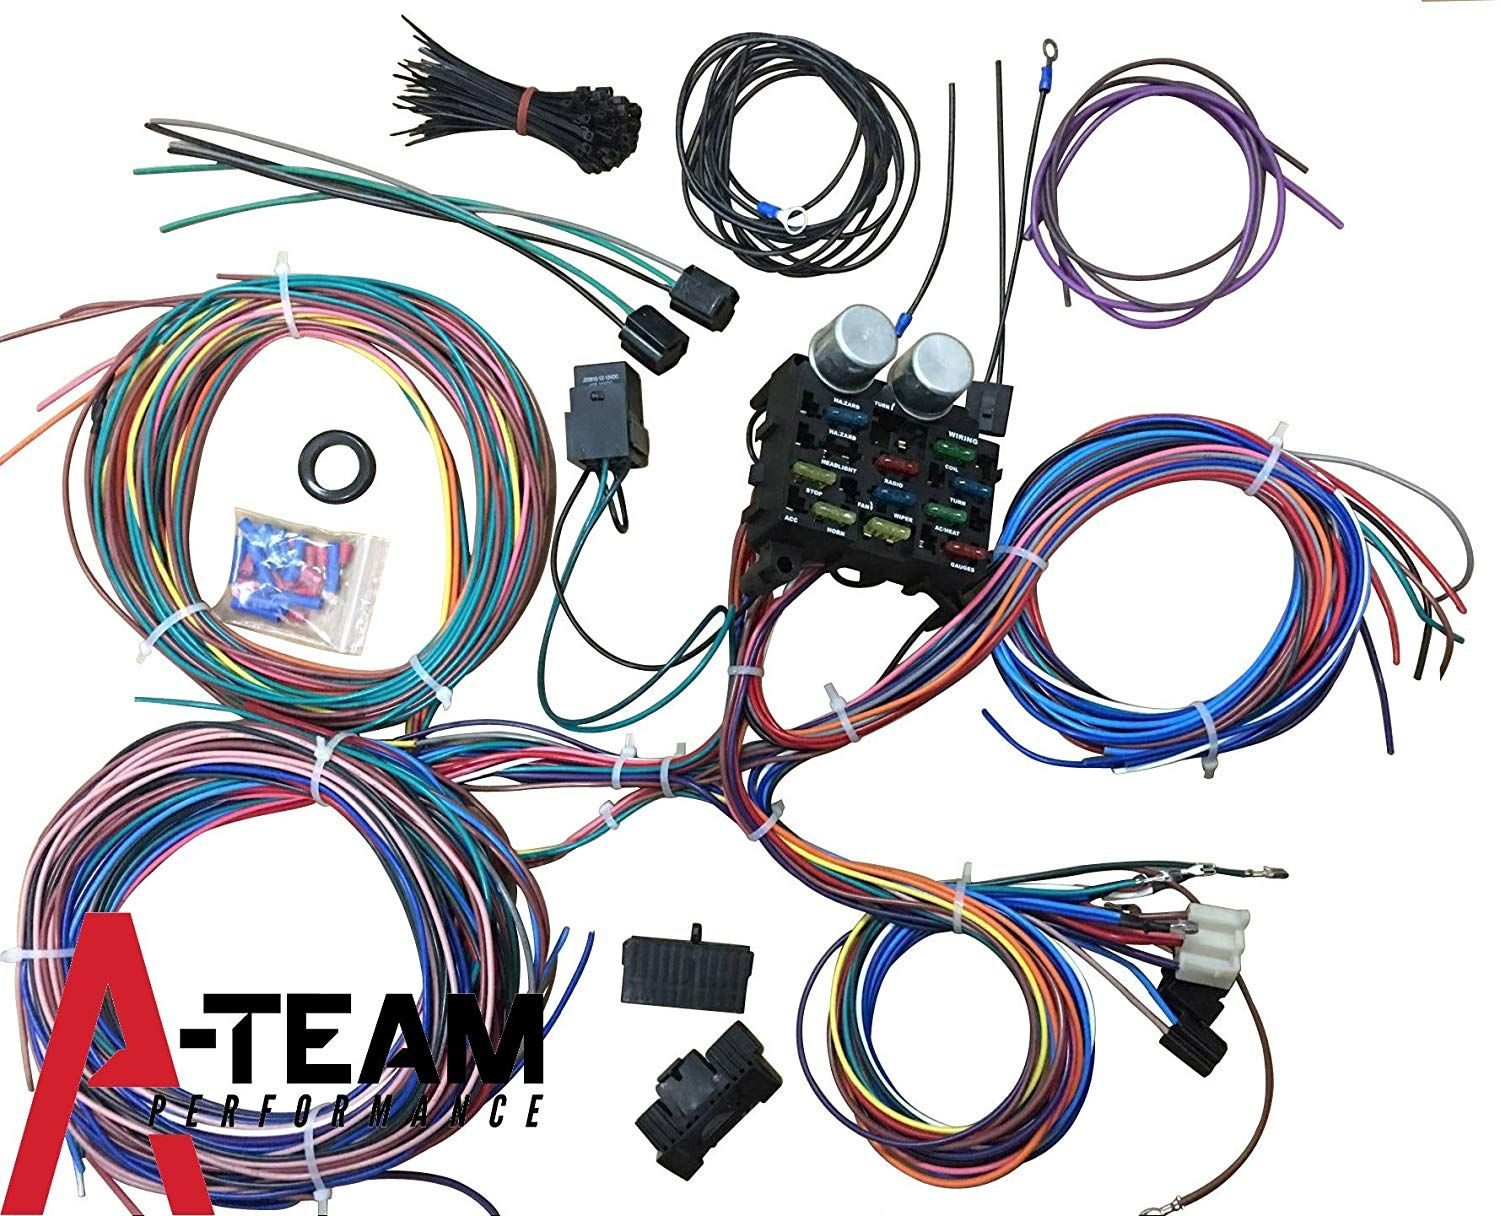 small resolution of a team performance 12 standard circuit universal wiring harness kit muscle car hot rod street rod new xl wire you can find more details by visiting the